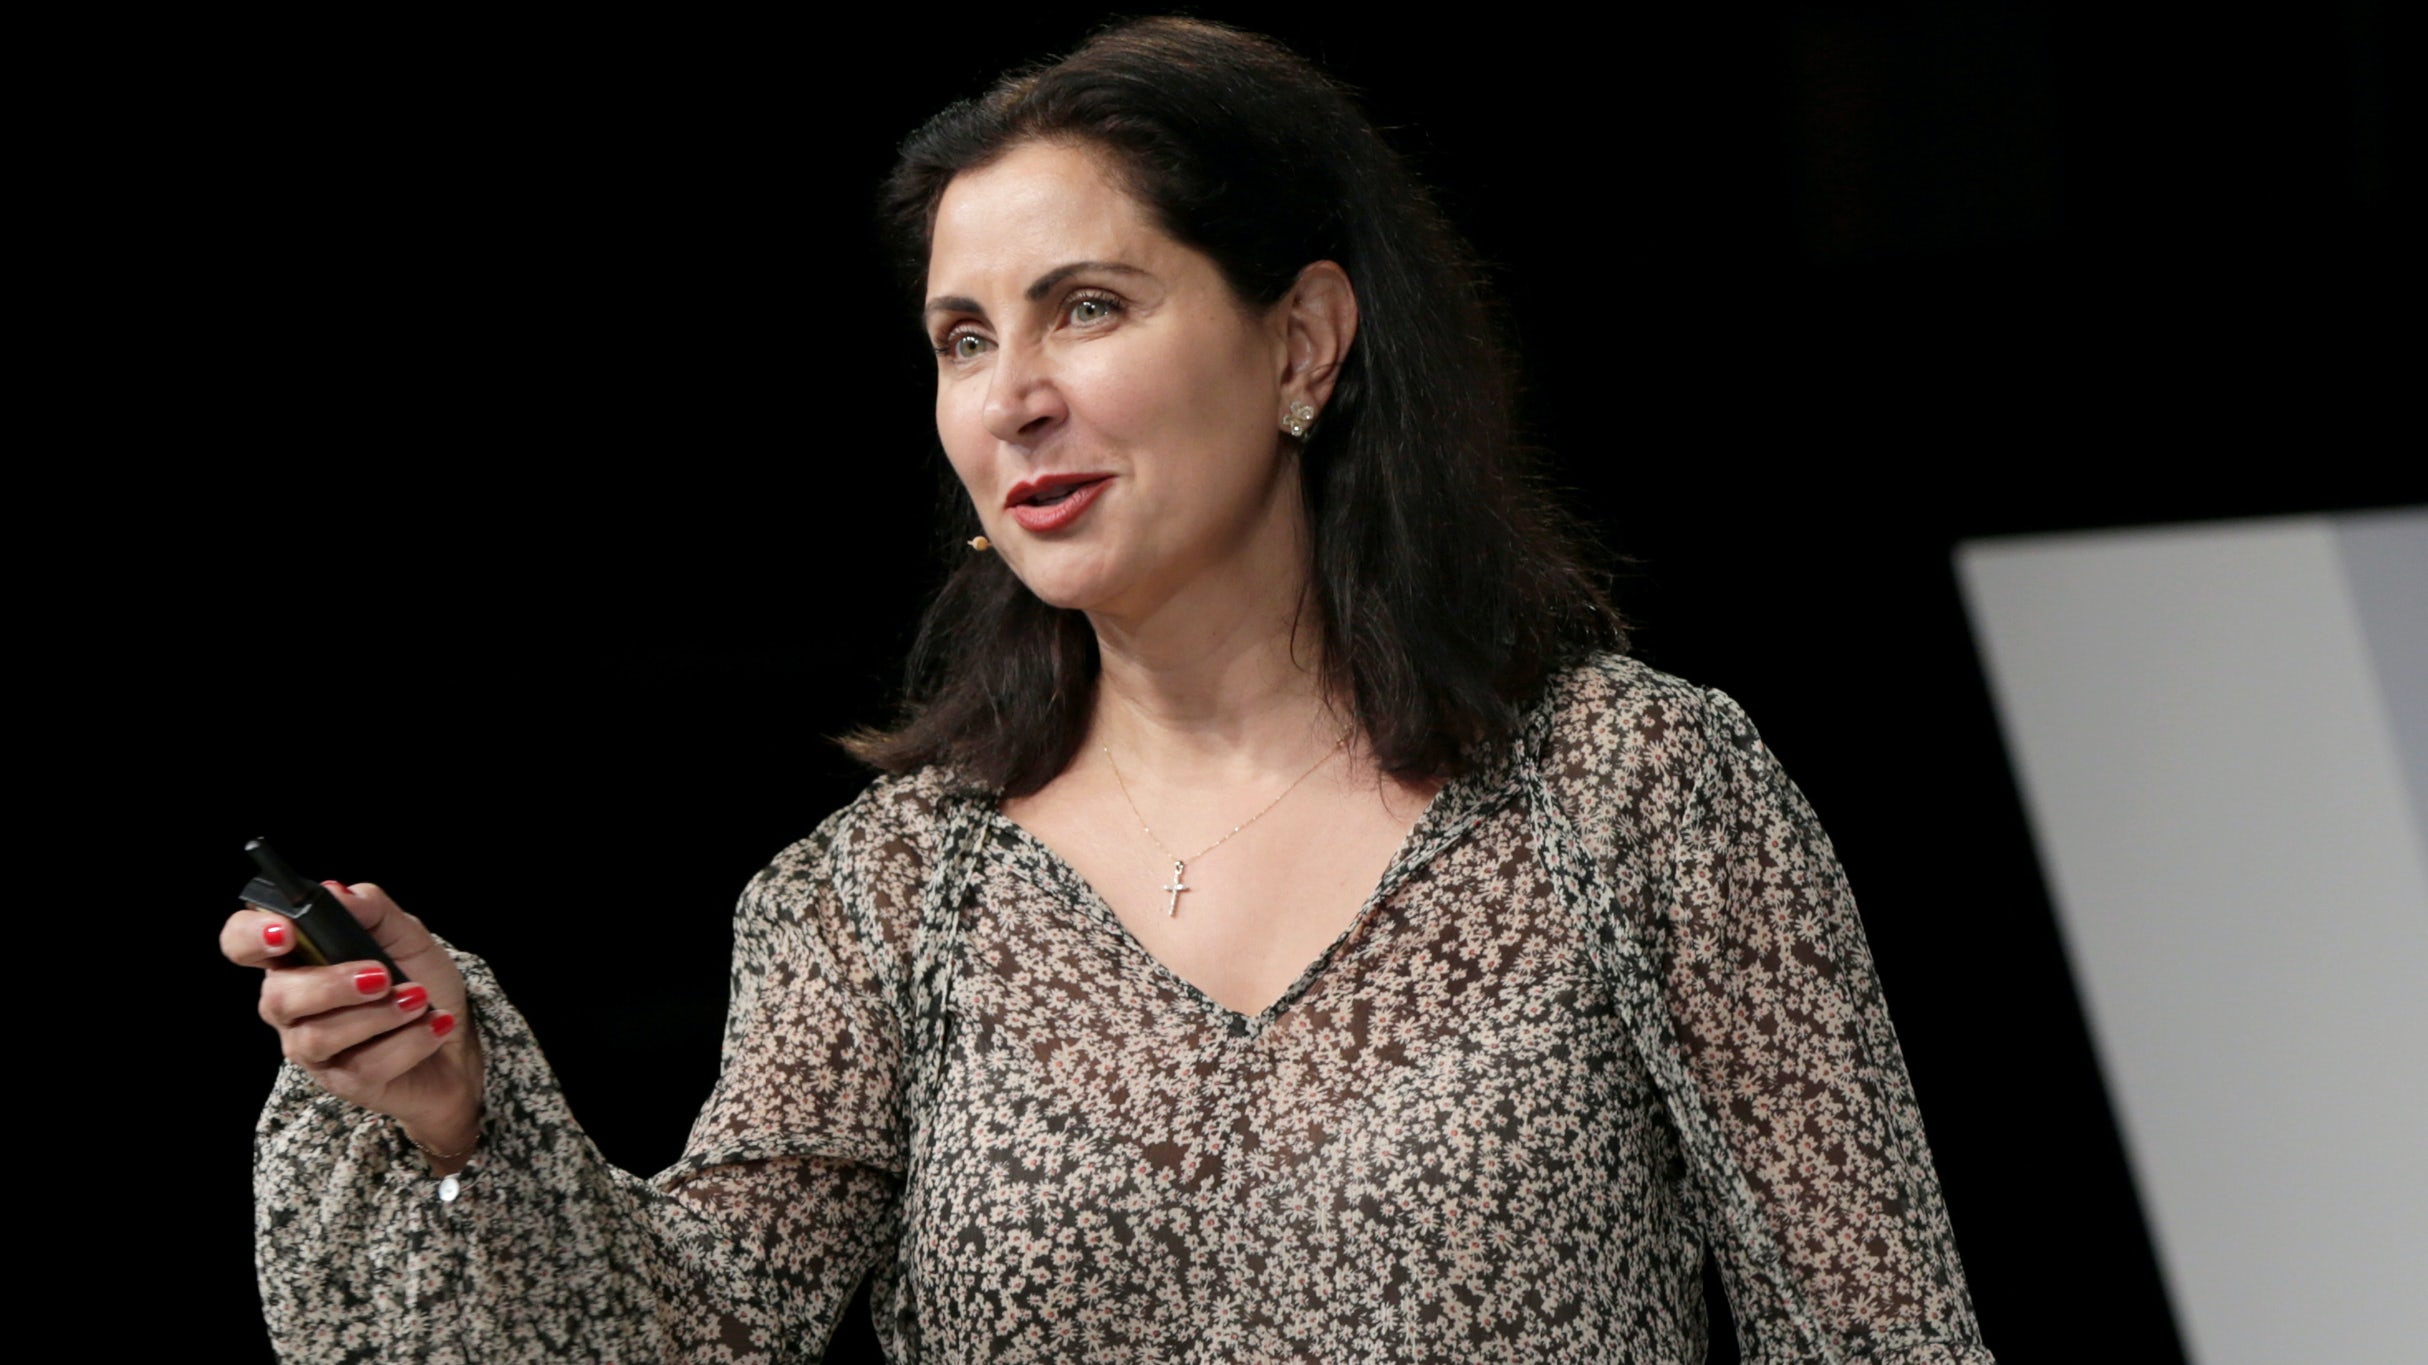 The Bof Podcast: Fetchr Co-Founder Joy Ajlouny on Being a Woman in Tech